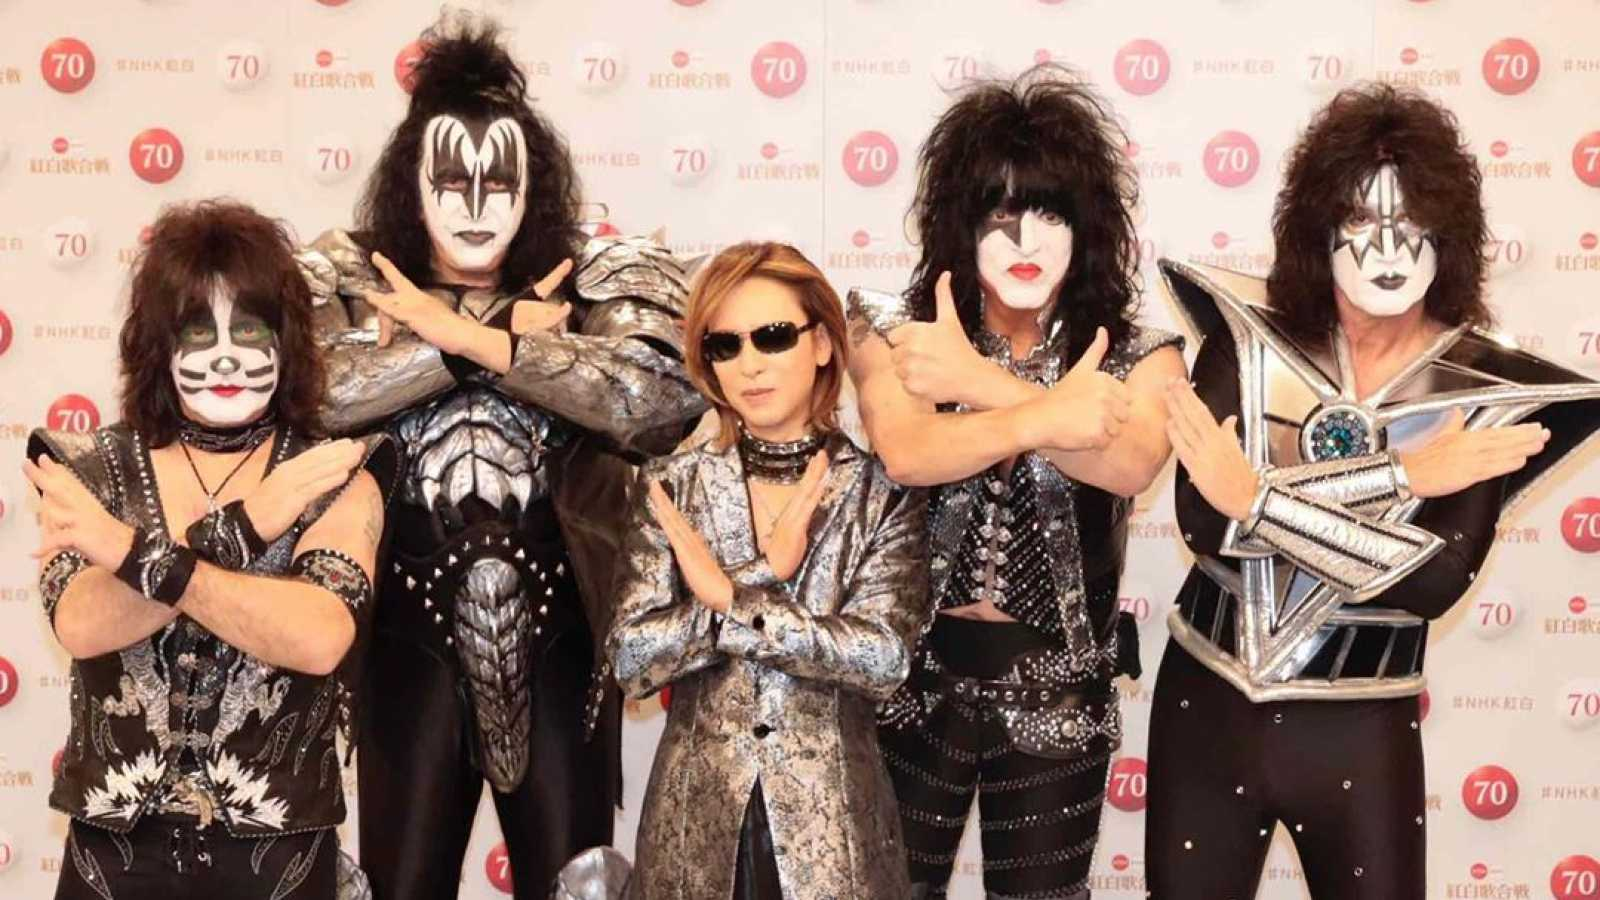 YOSHIKI to Collaborate with KISS for Kouhaku Uta Gassen Performance © YOSHIKI x KISS. Provided by Resonance Media.